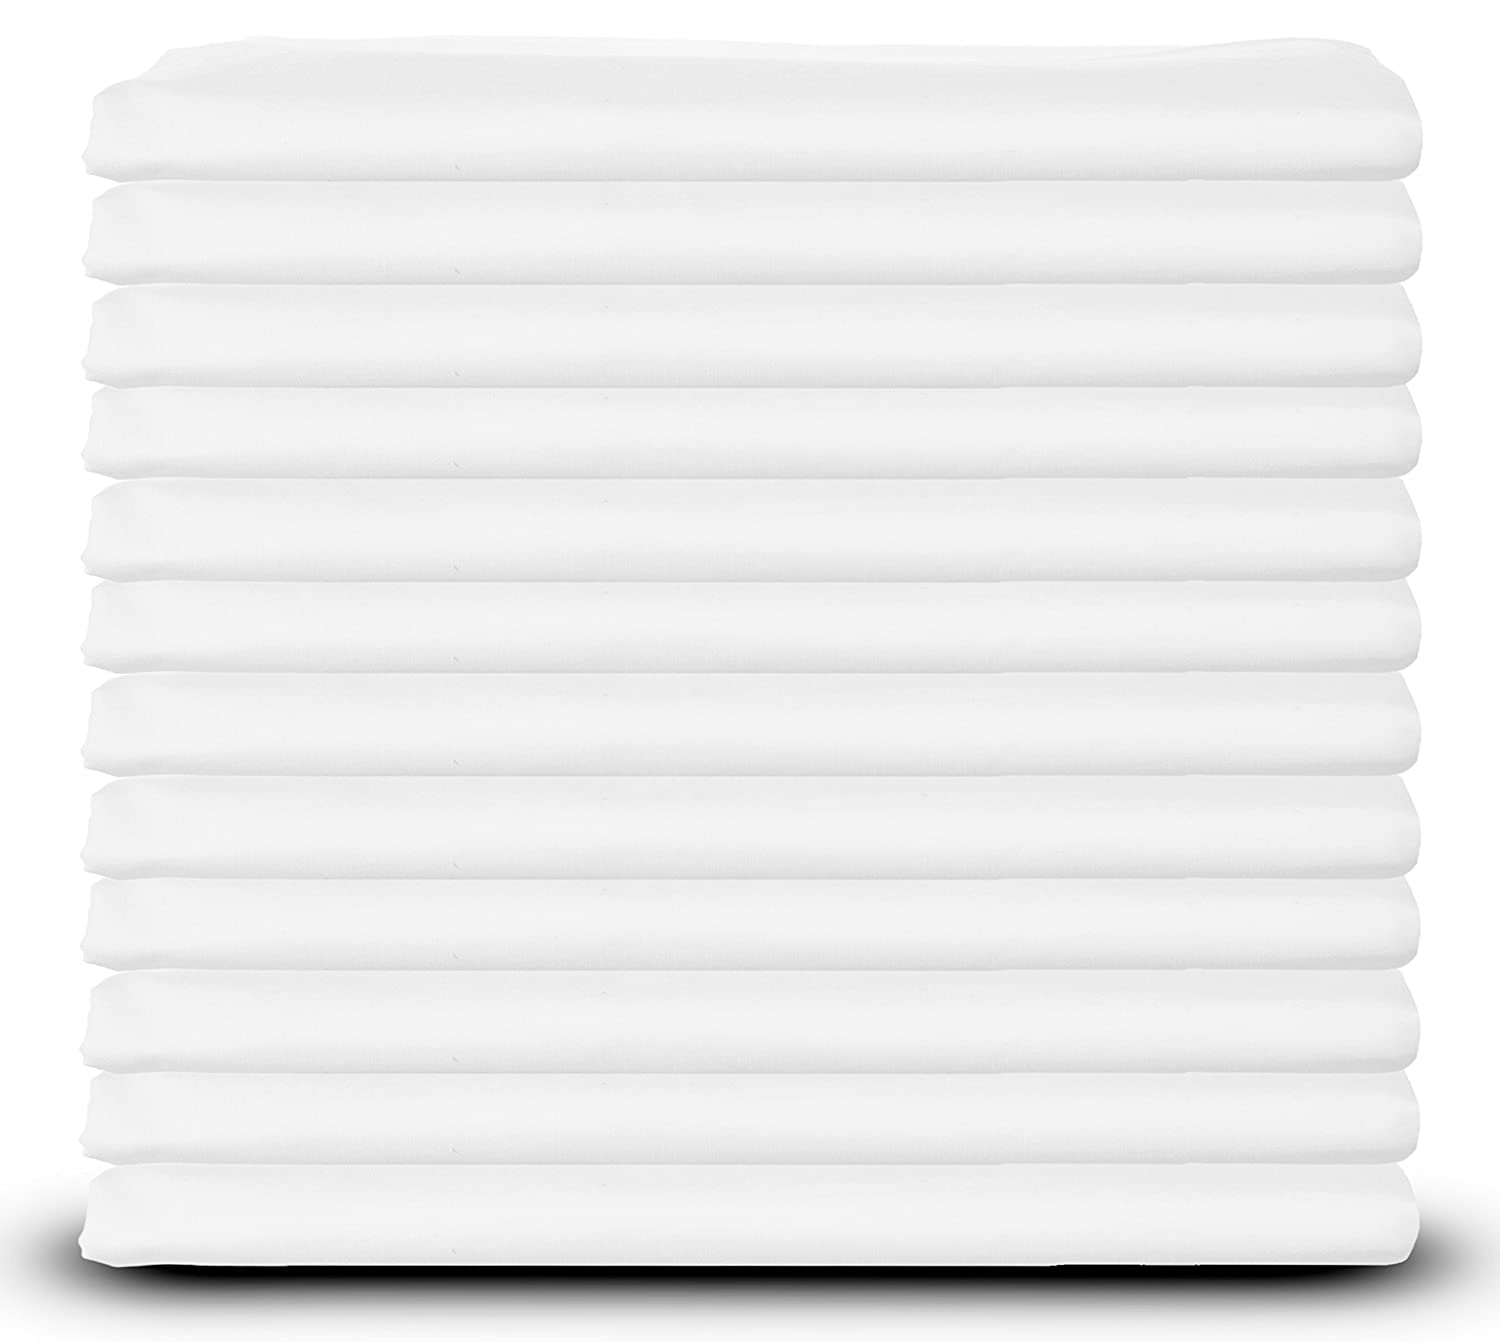 Britannica Home Fashions Tencel Sheets - Product details